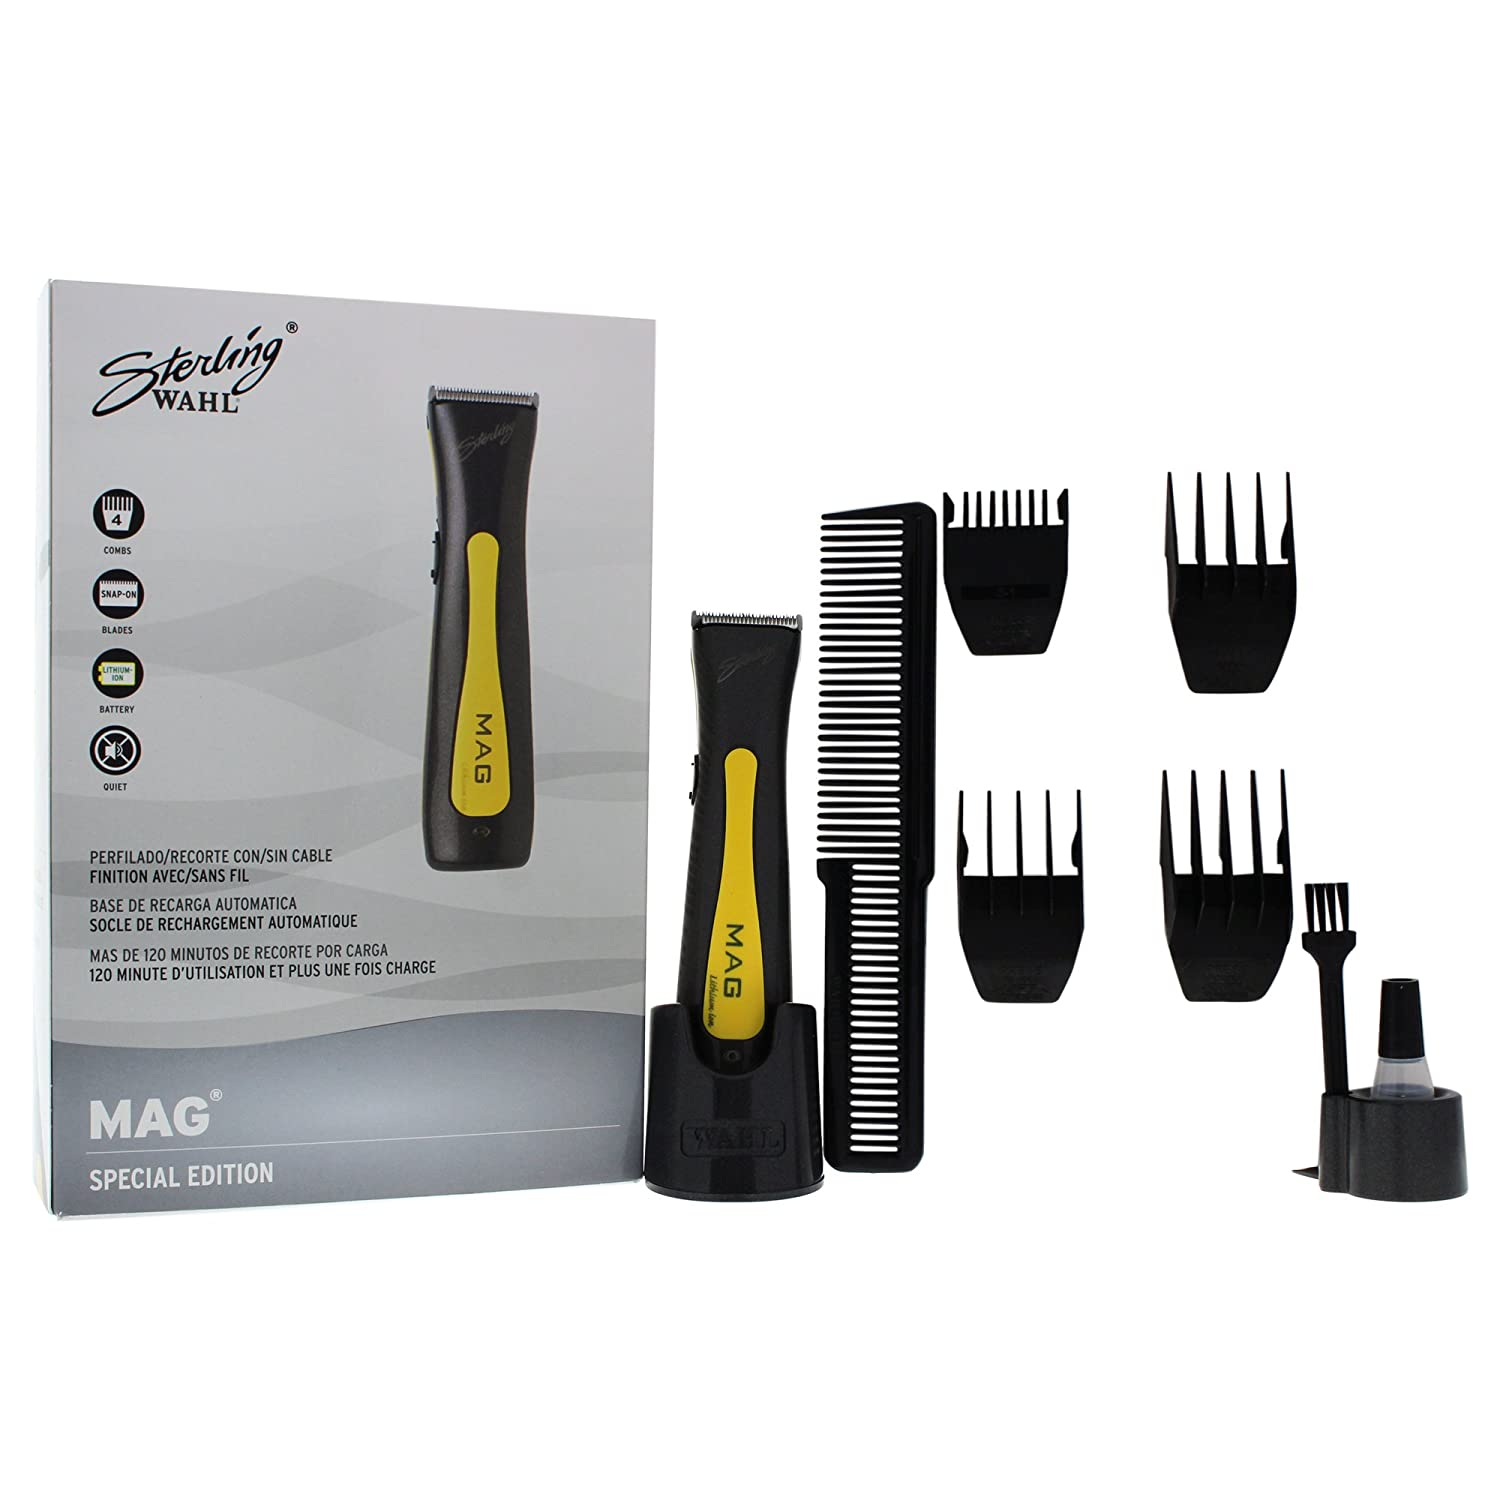 Amazon.com: WAHL Professional Sterling Mag for Men, Play Mat Kit Clipper/trimmer: WAHL Professional: Beauty